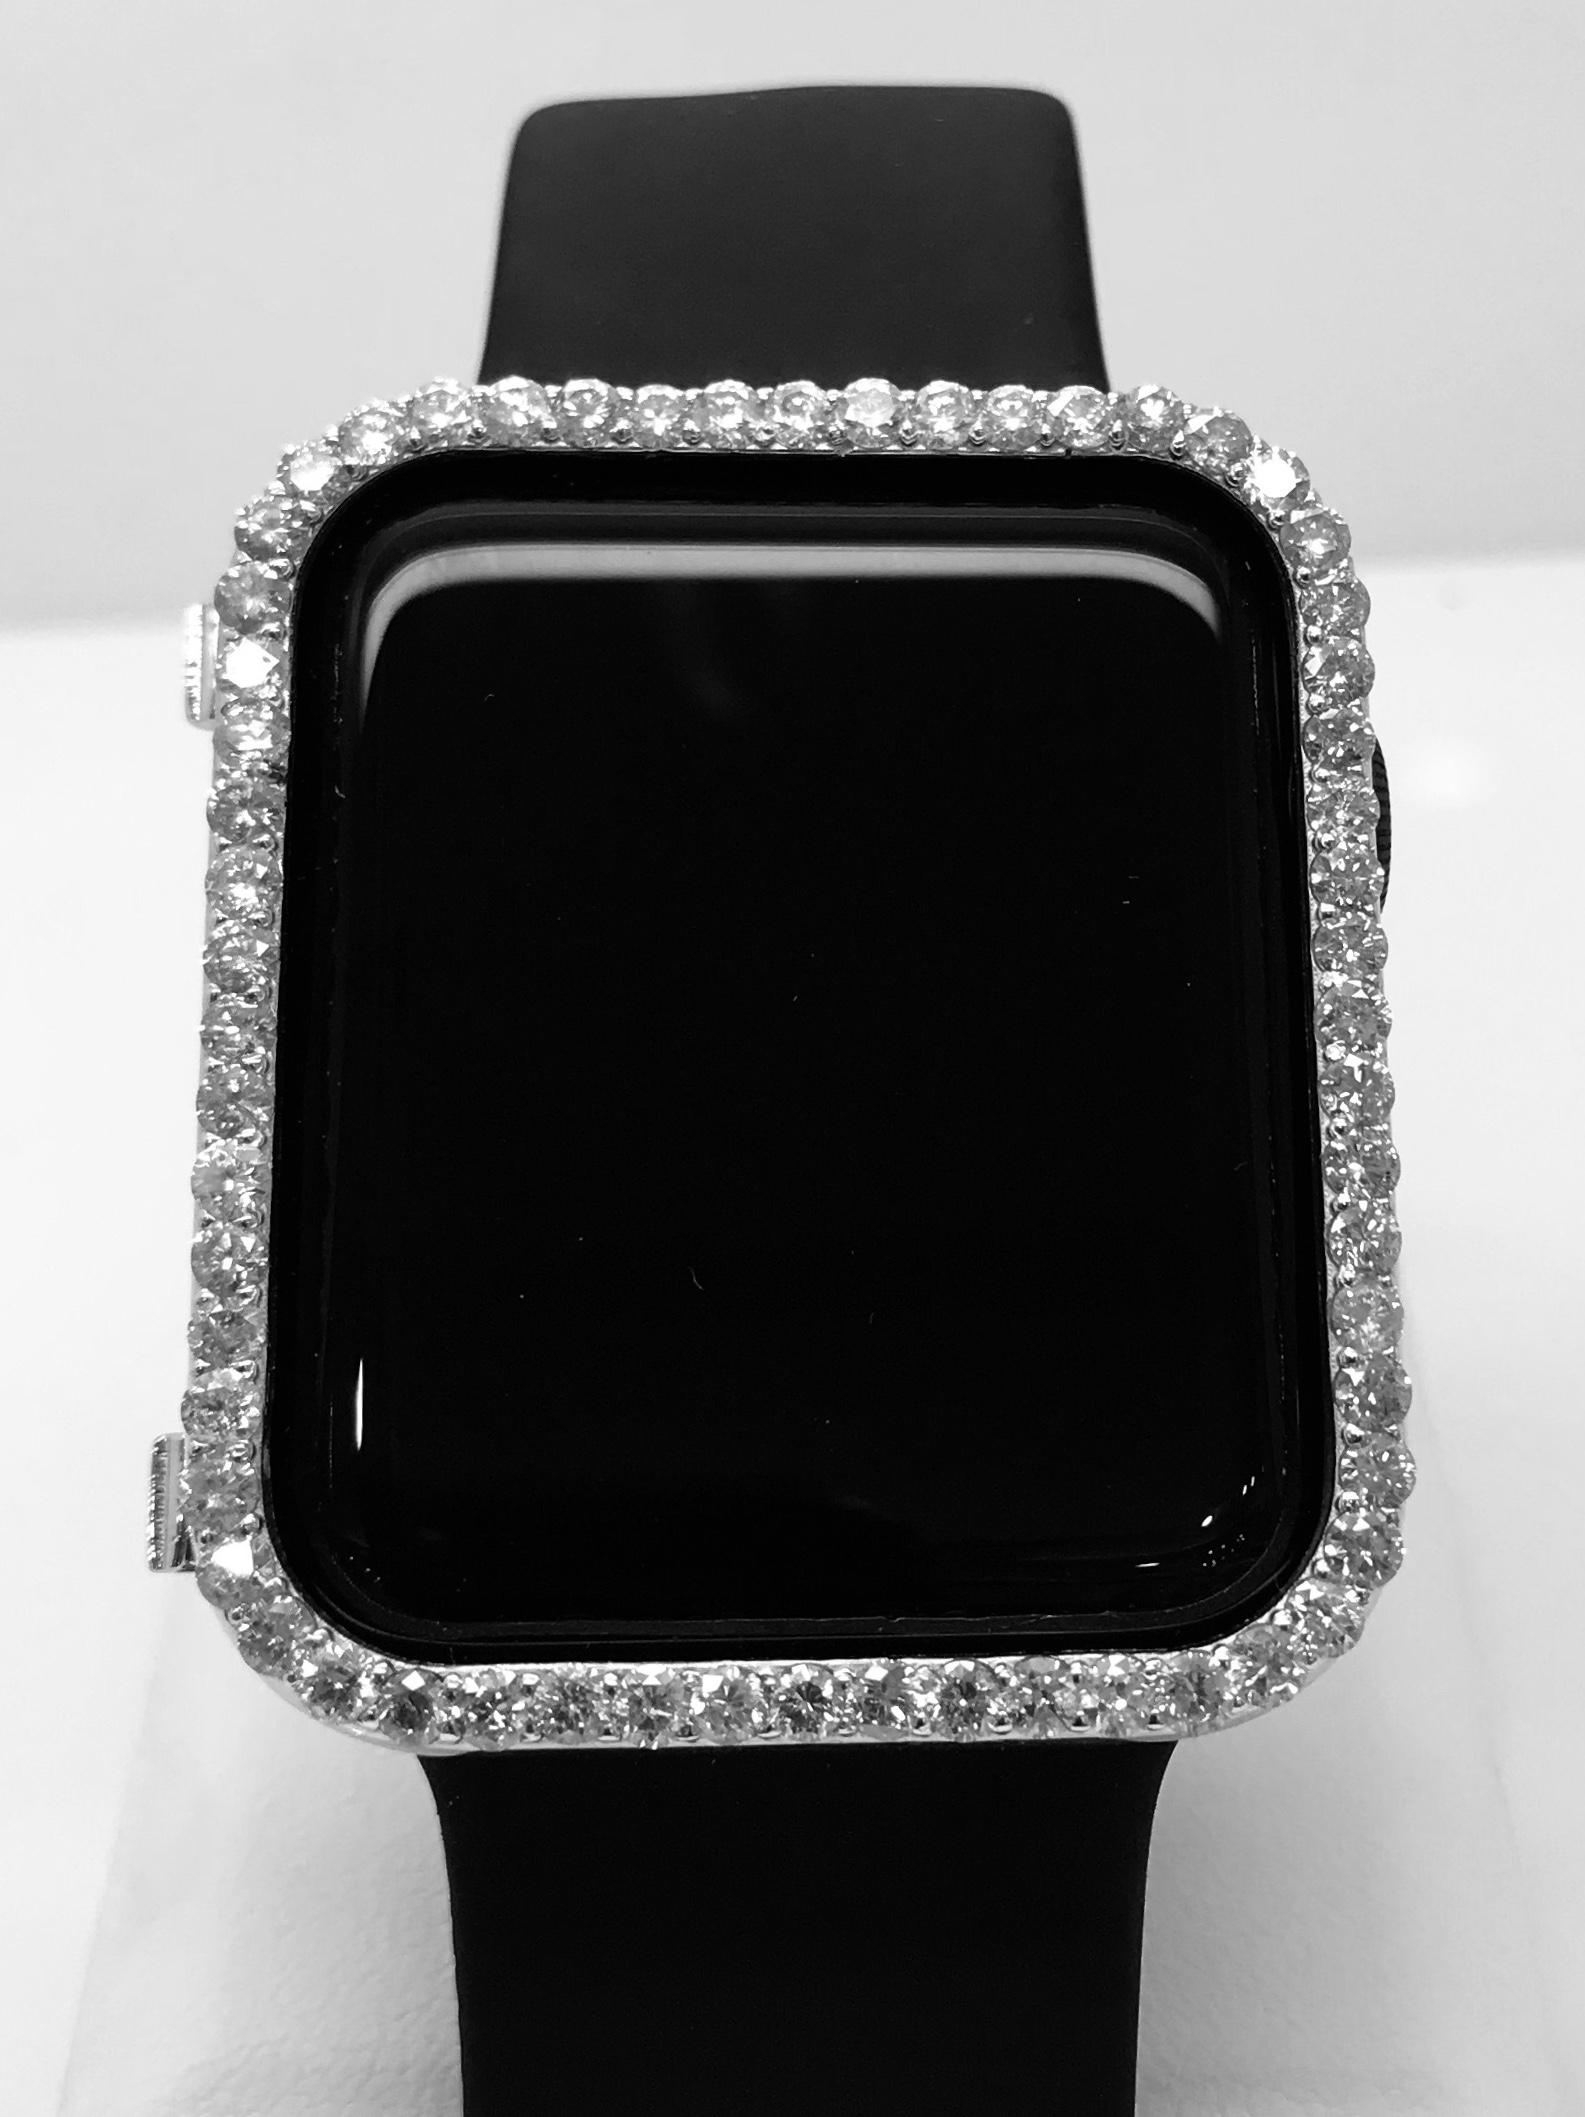 Black Diamond Apple Watch Bezel